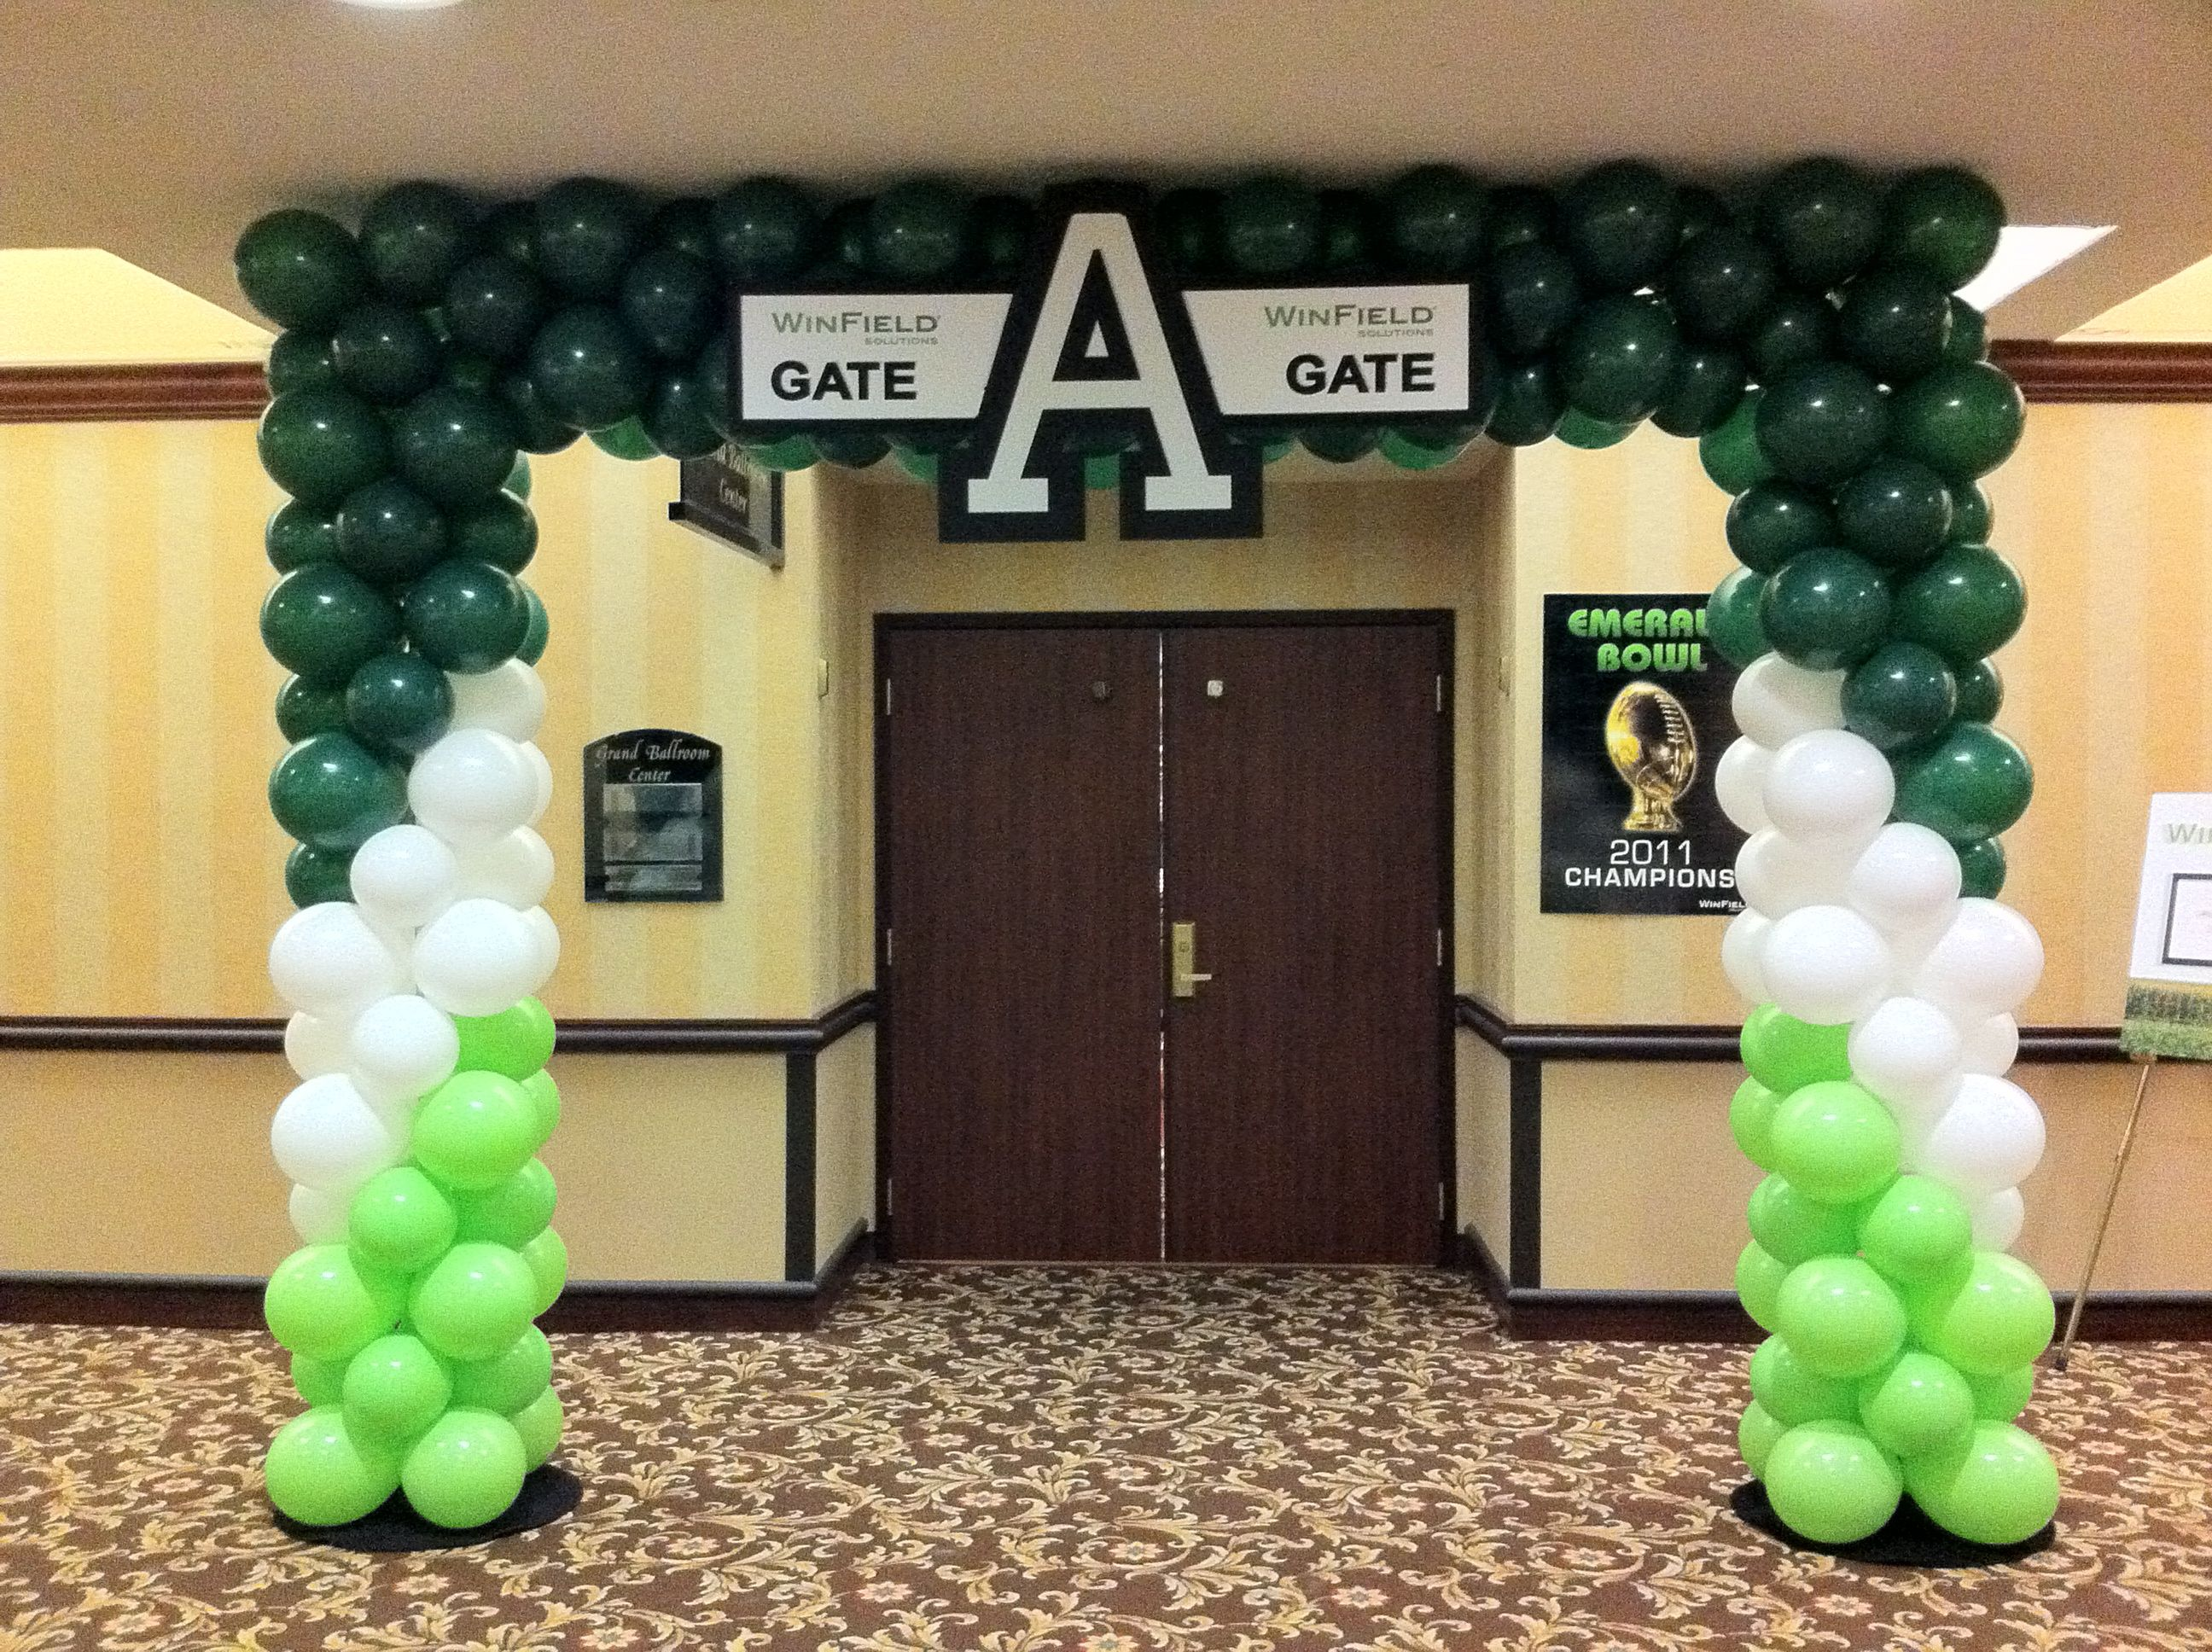 Square balloon arch with sign Square balloon